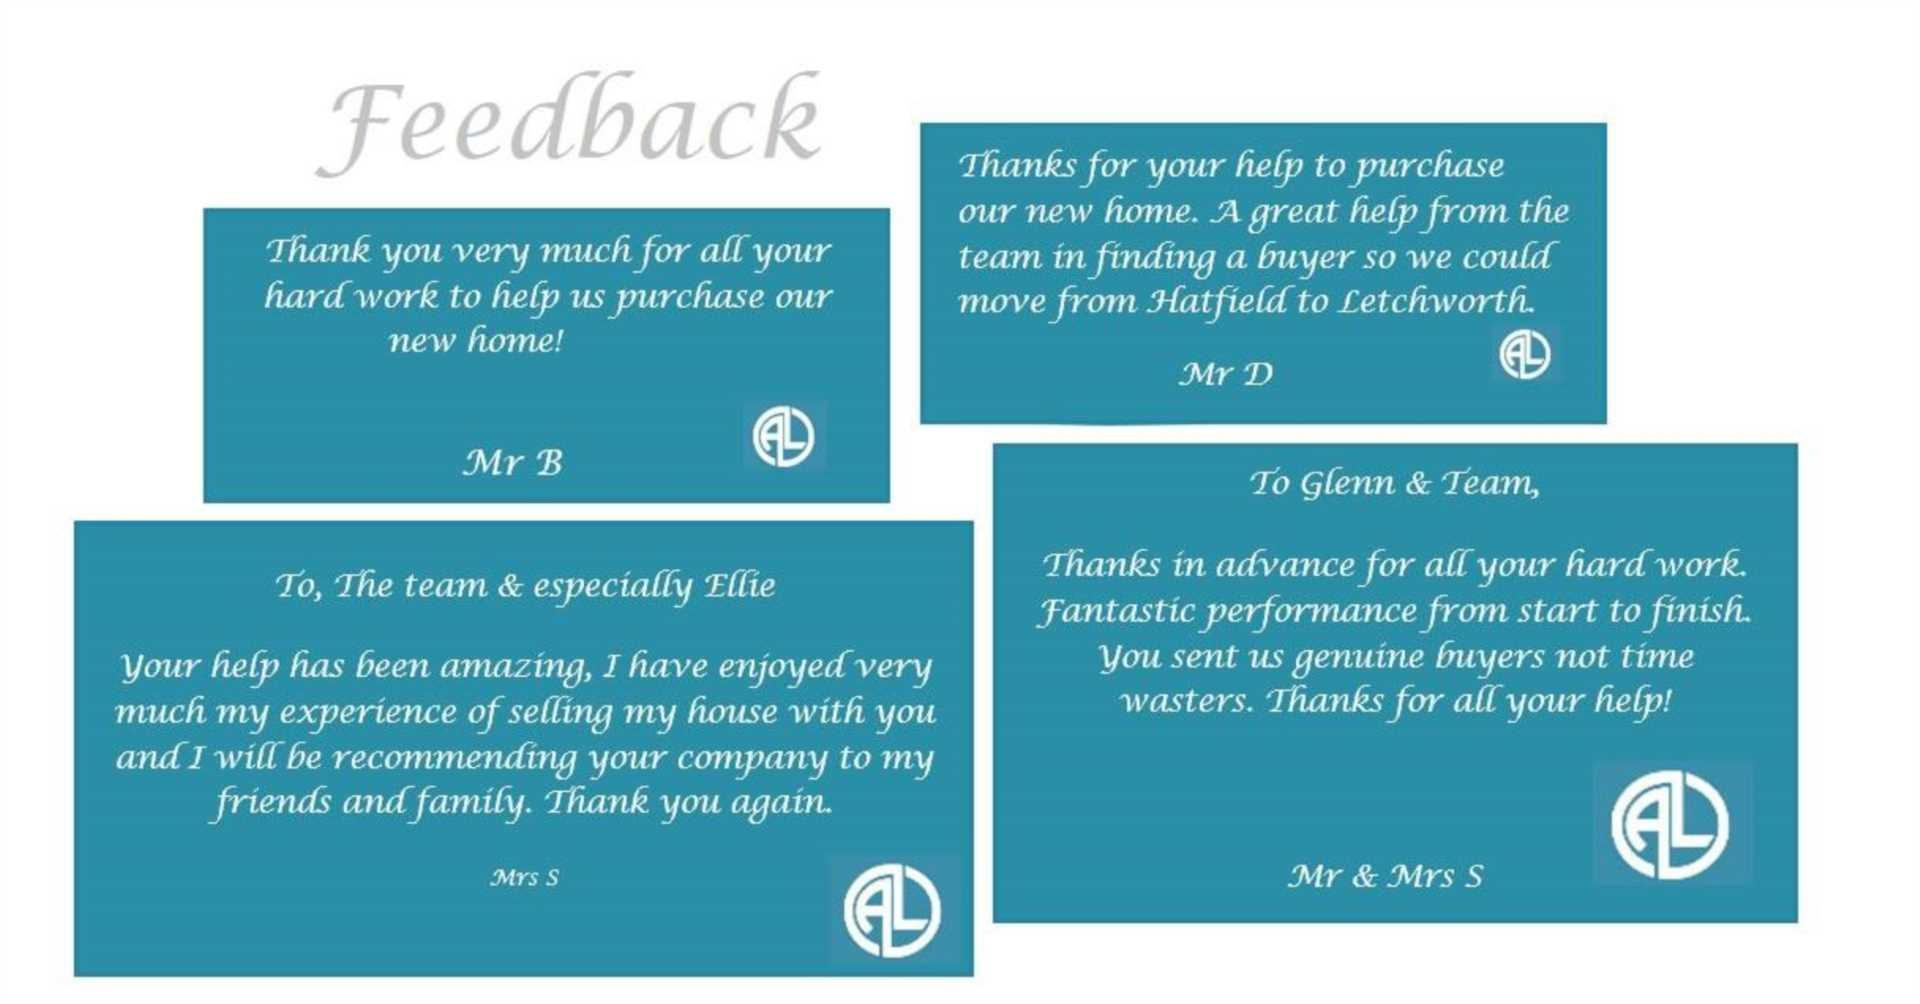 More outstanding feedback from our clients!!